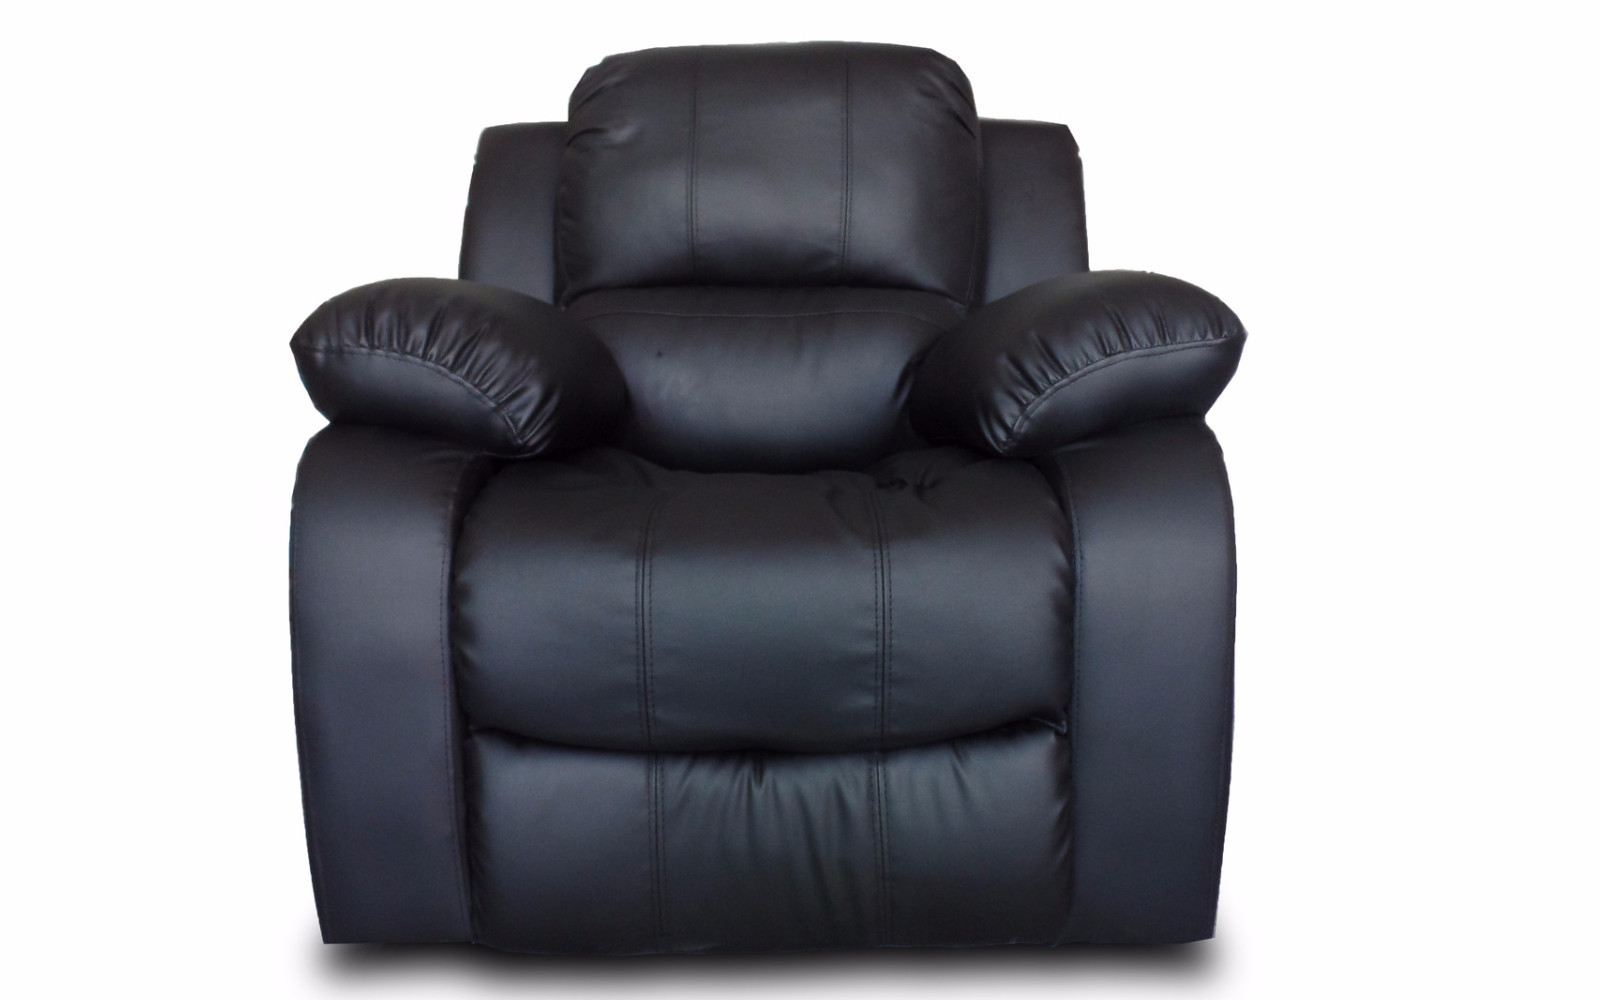 Classic Oversize and Overstuffed Single Seat Bonded Leather Recliner Chair  sc 1 st  Walmart & Recliners - Walmart.com islam-shia.org